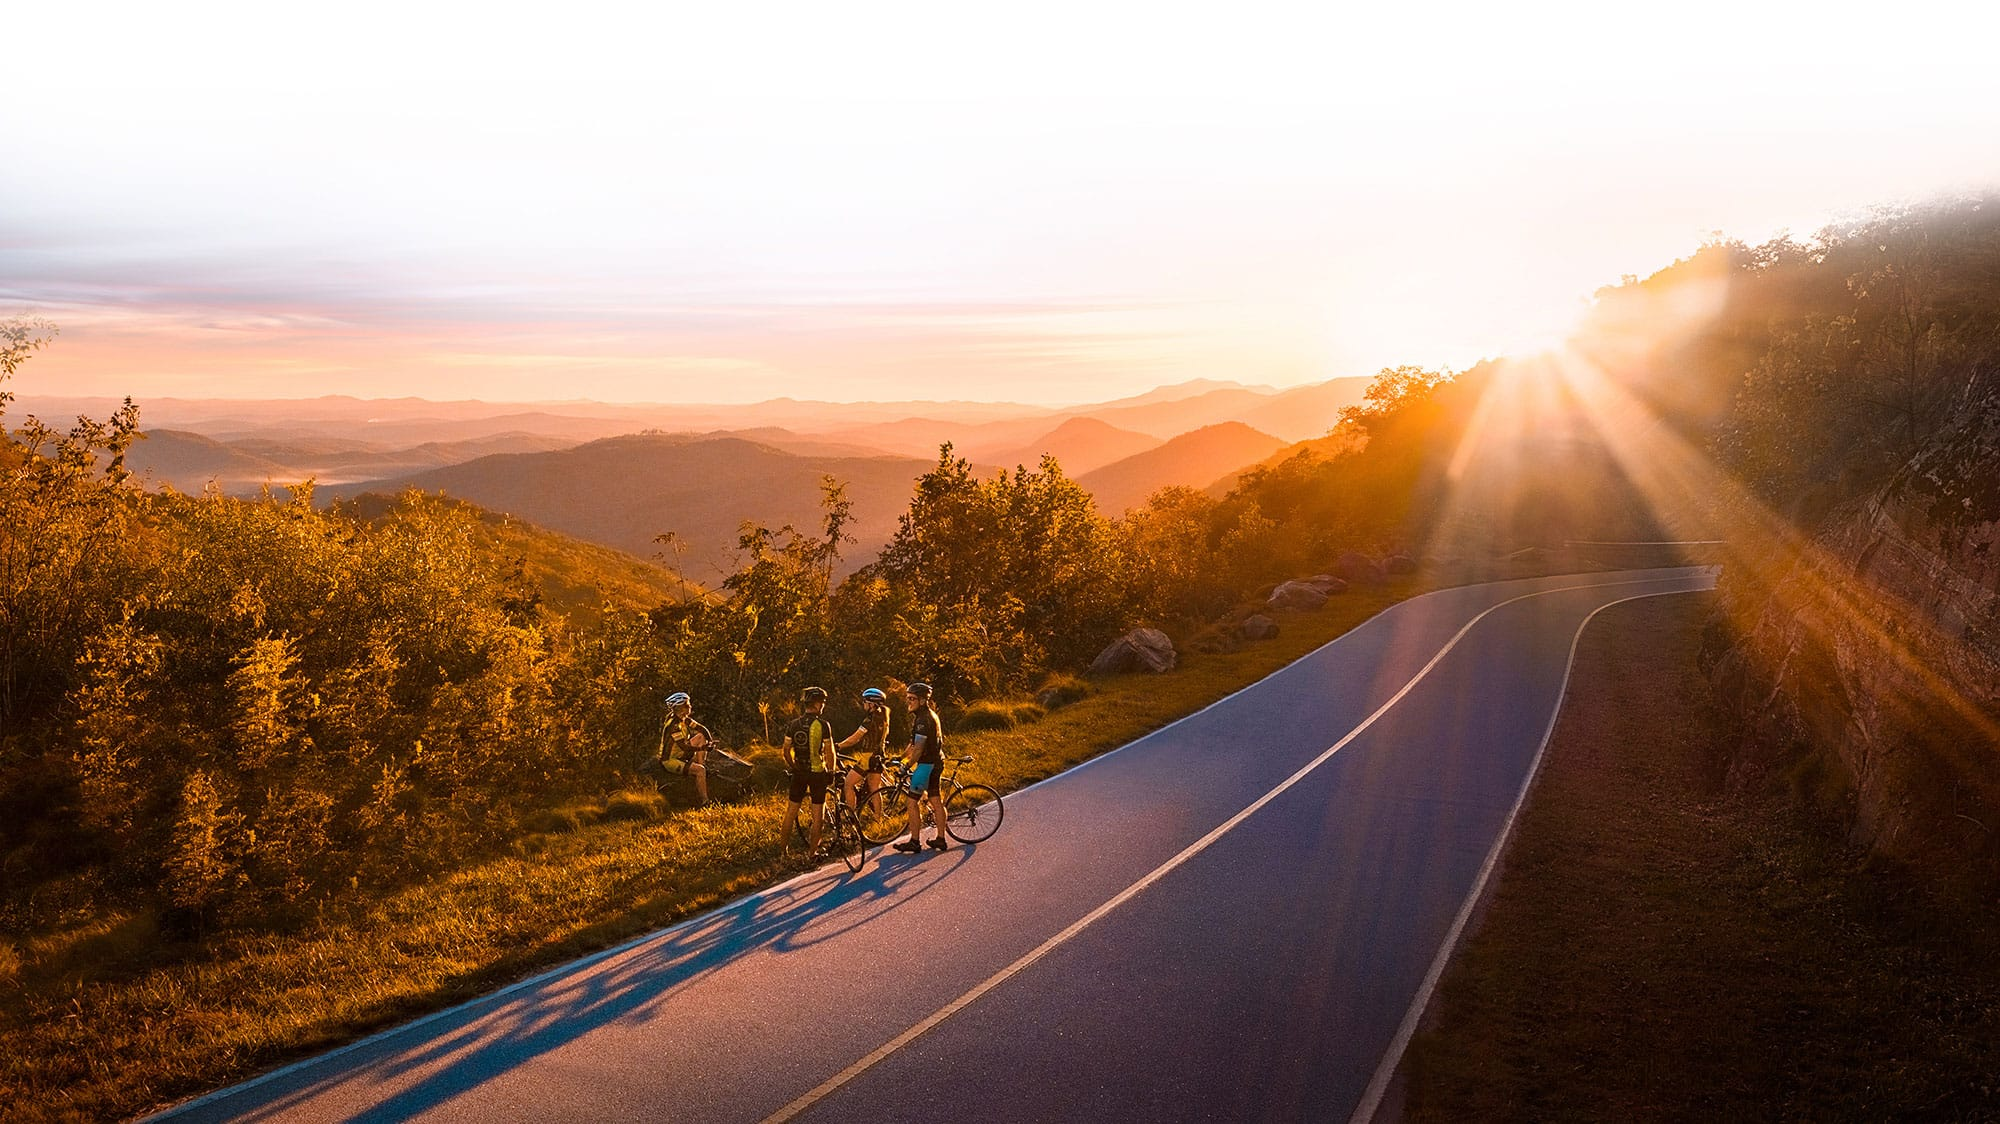 Cyclists taking in the view on The Blue Ridge Parkway